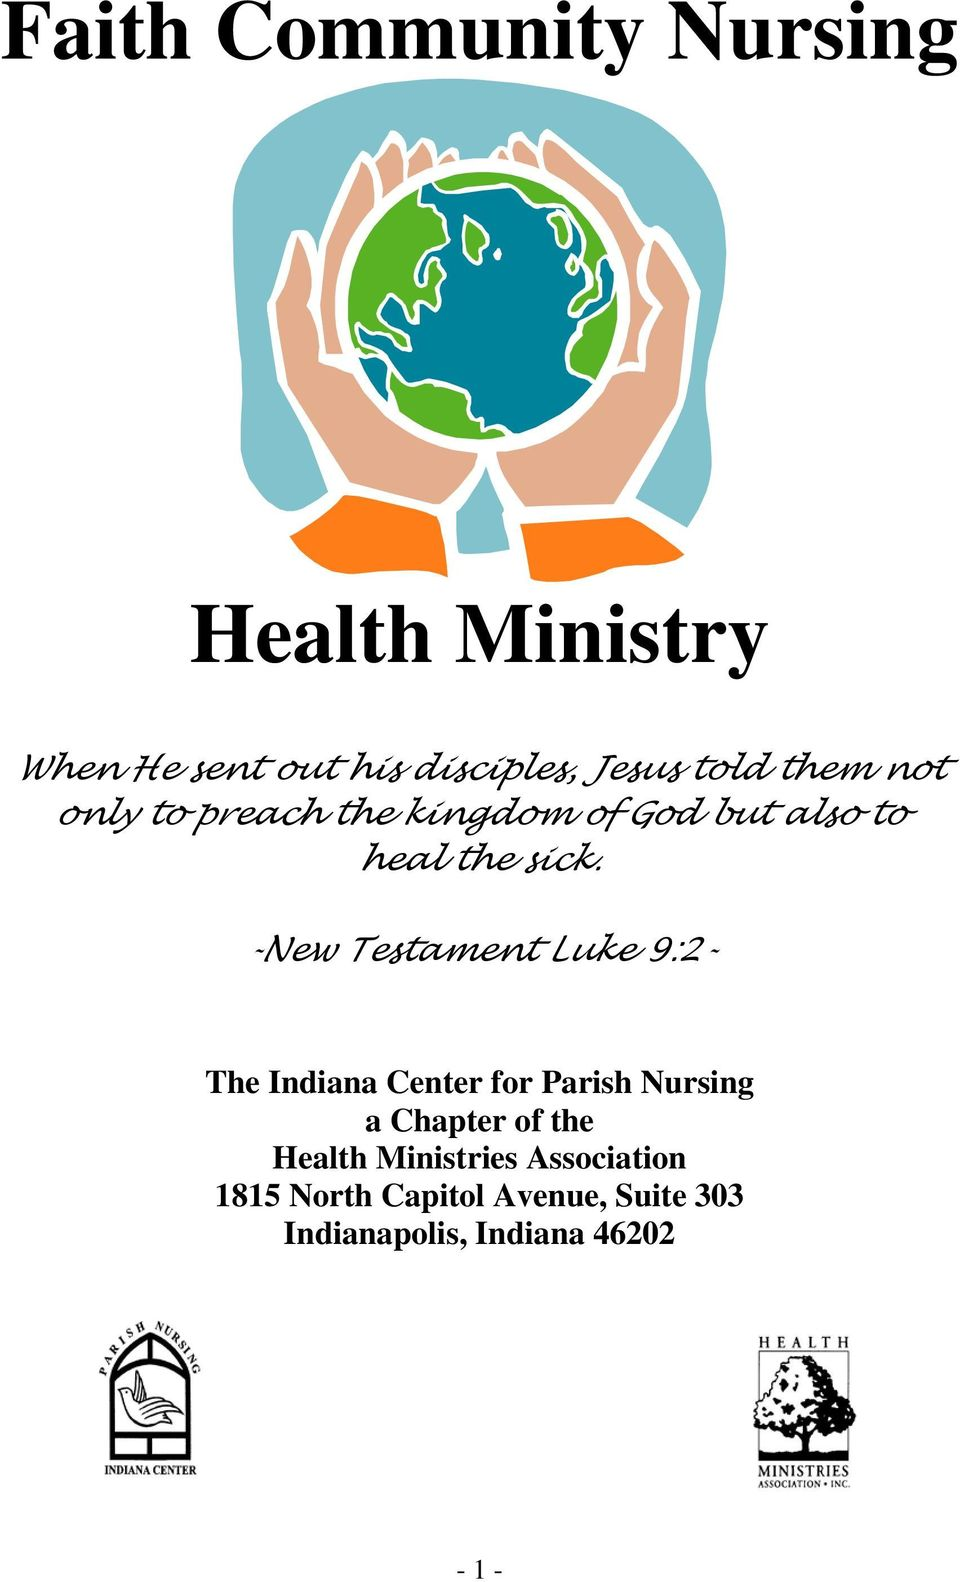 -New Testament Luke 9:2- The Indiana Center for Parish Nursing a Chapter of the